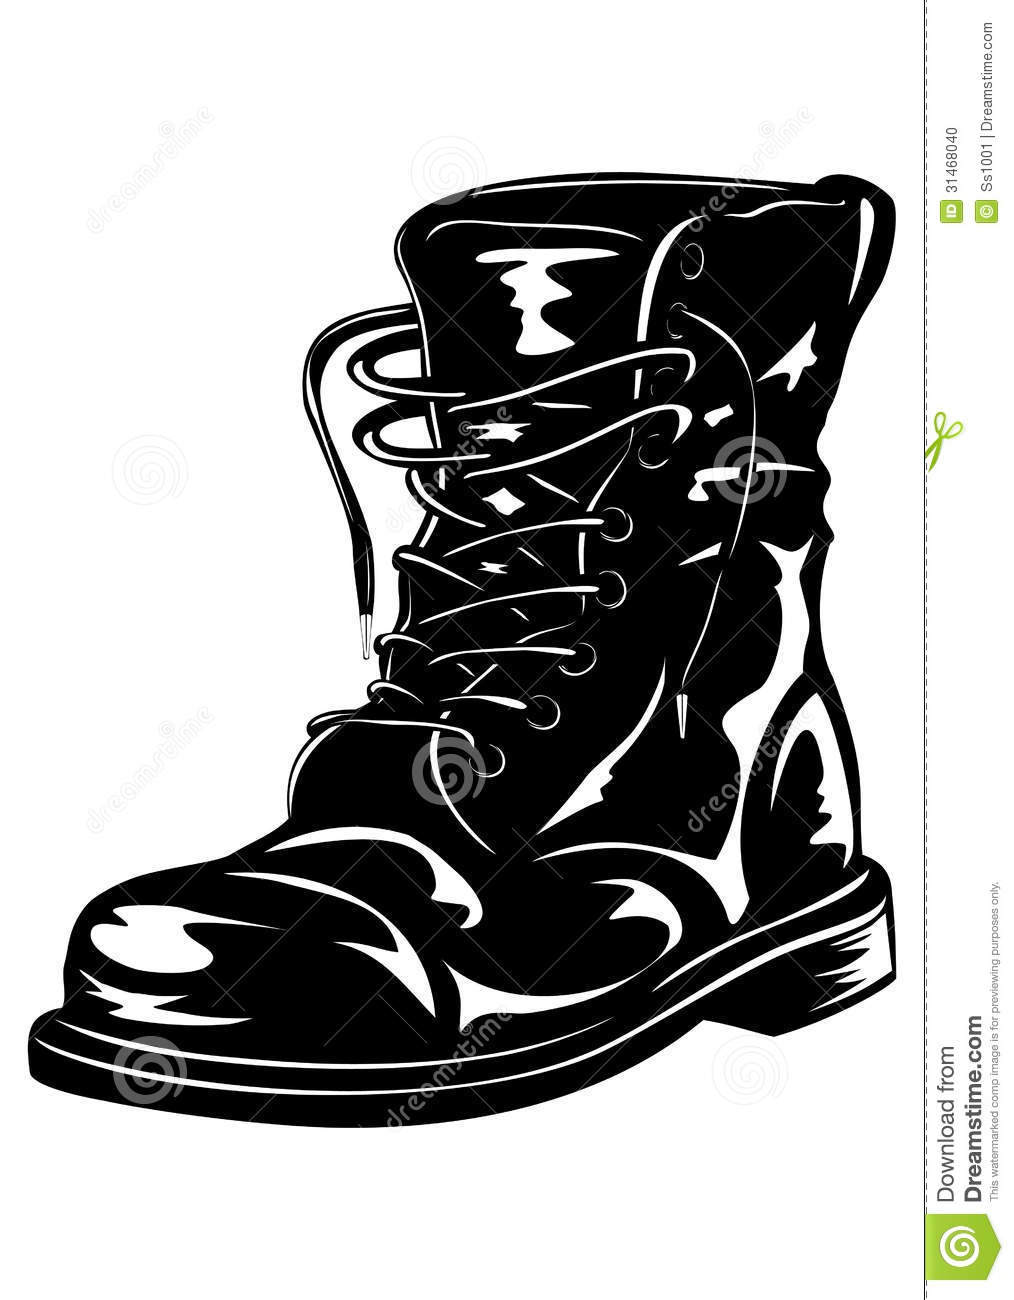 Black Army Boot Stock Vector Illustration Of Military